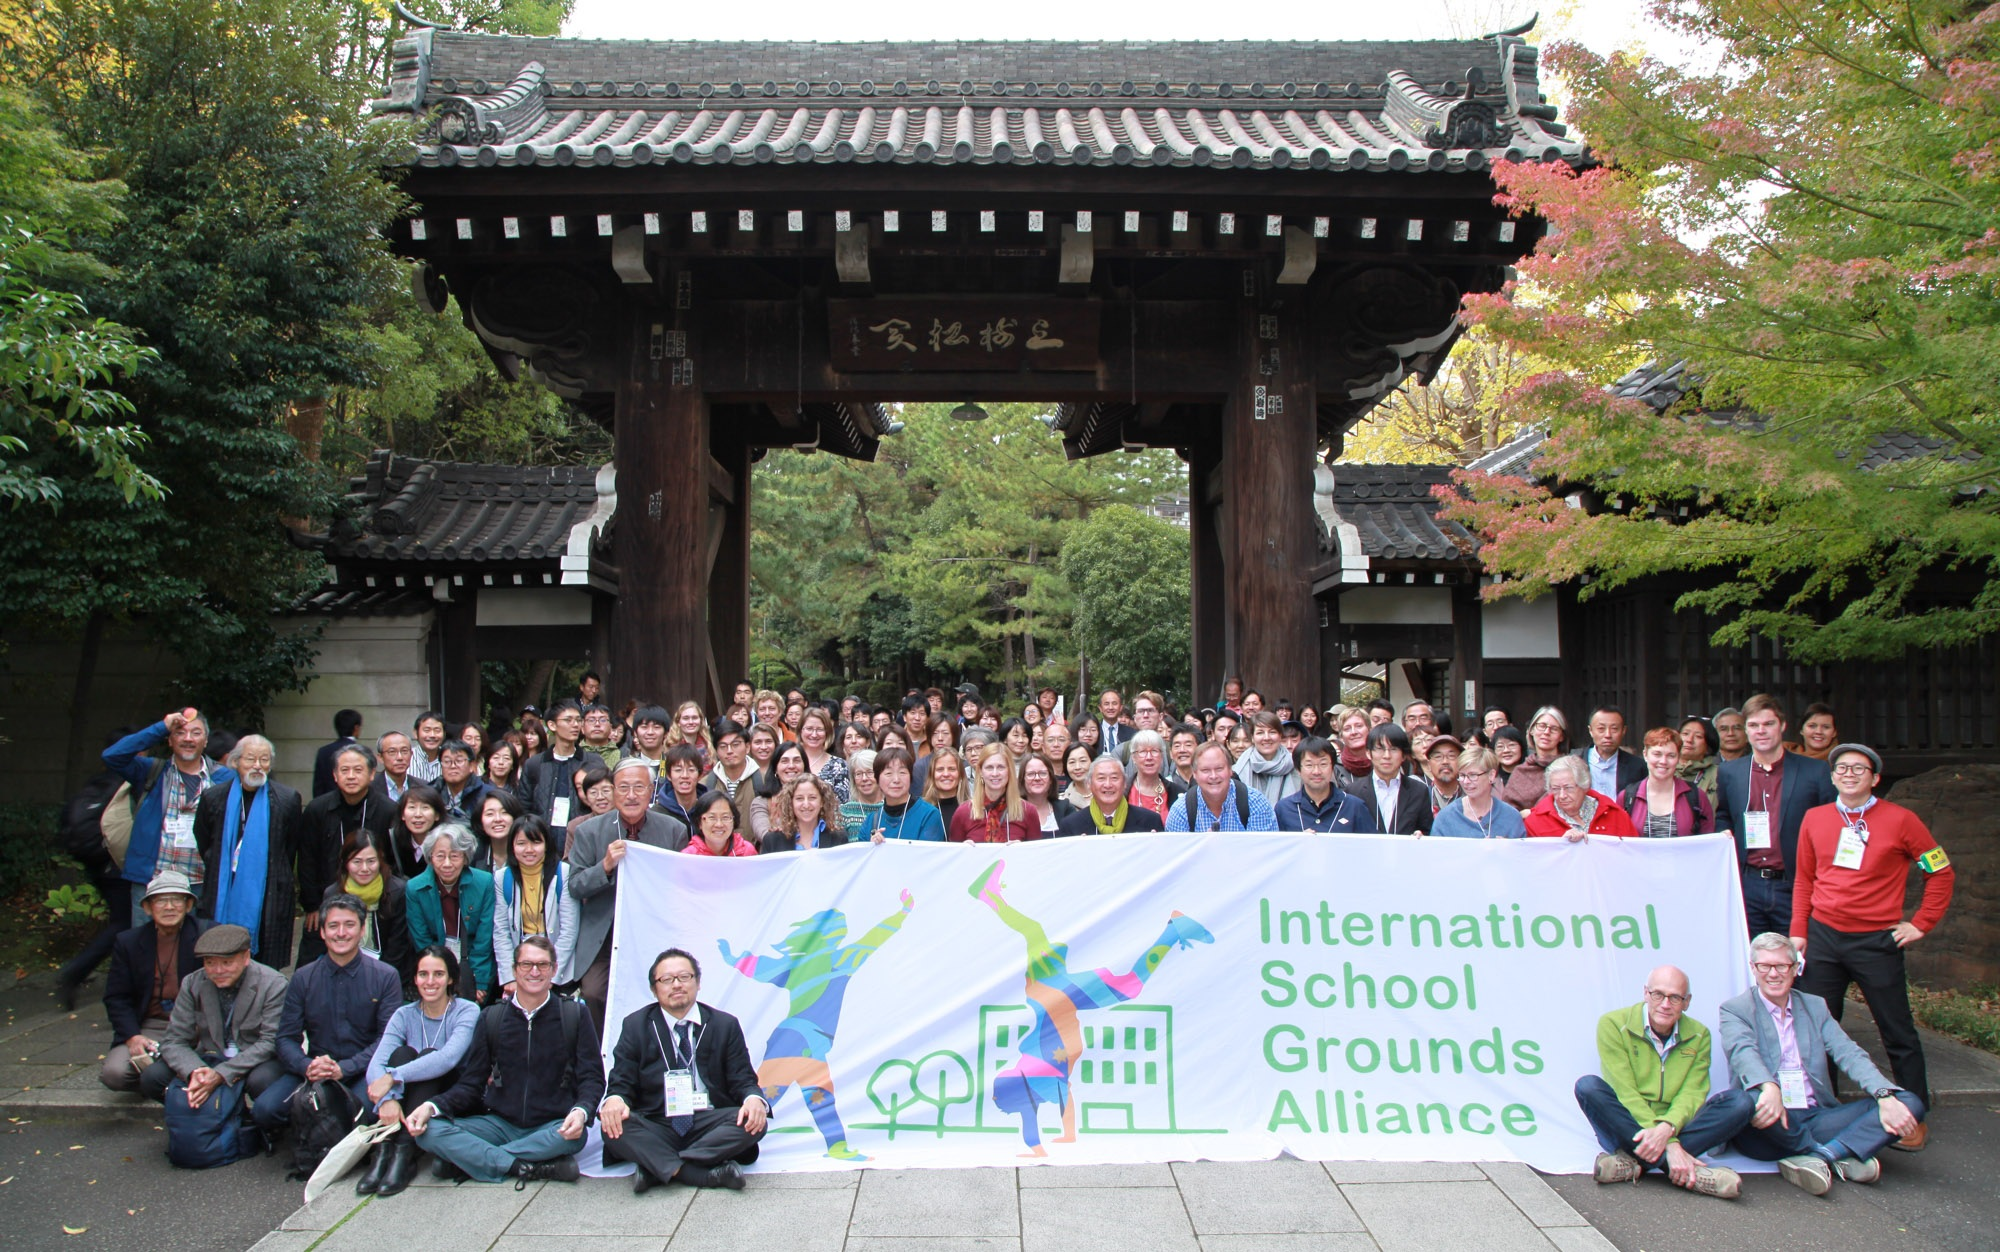 Conference participants at the International School Grounds Alliance's conference in Yokohama, Japan.